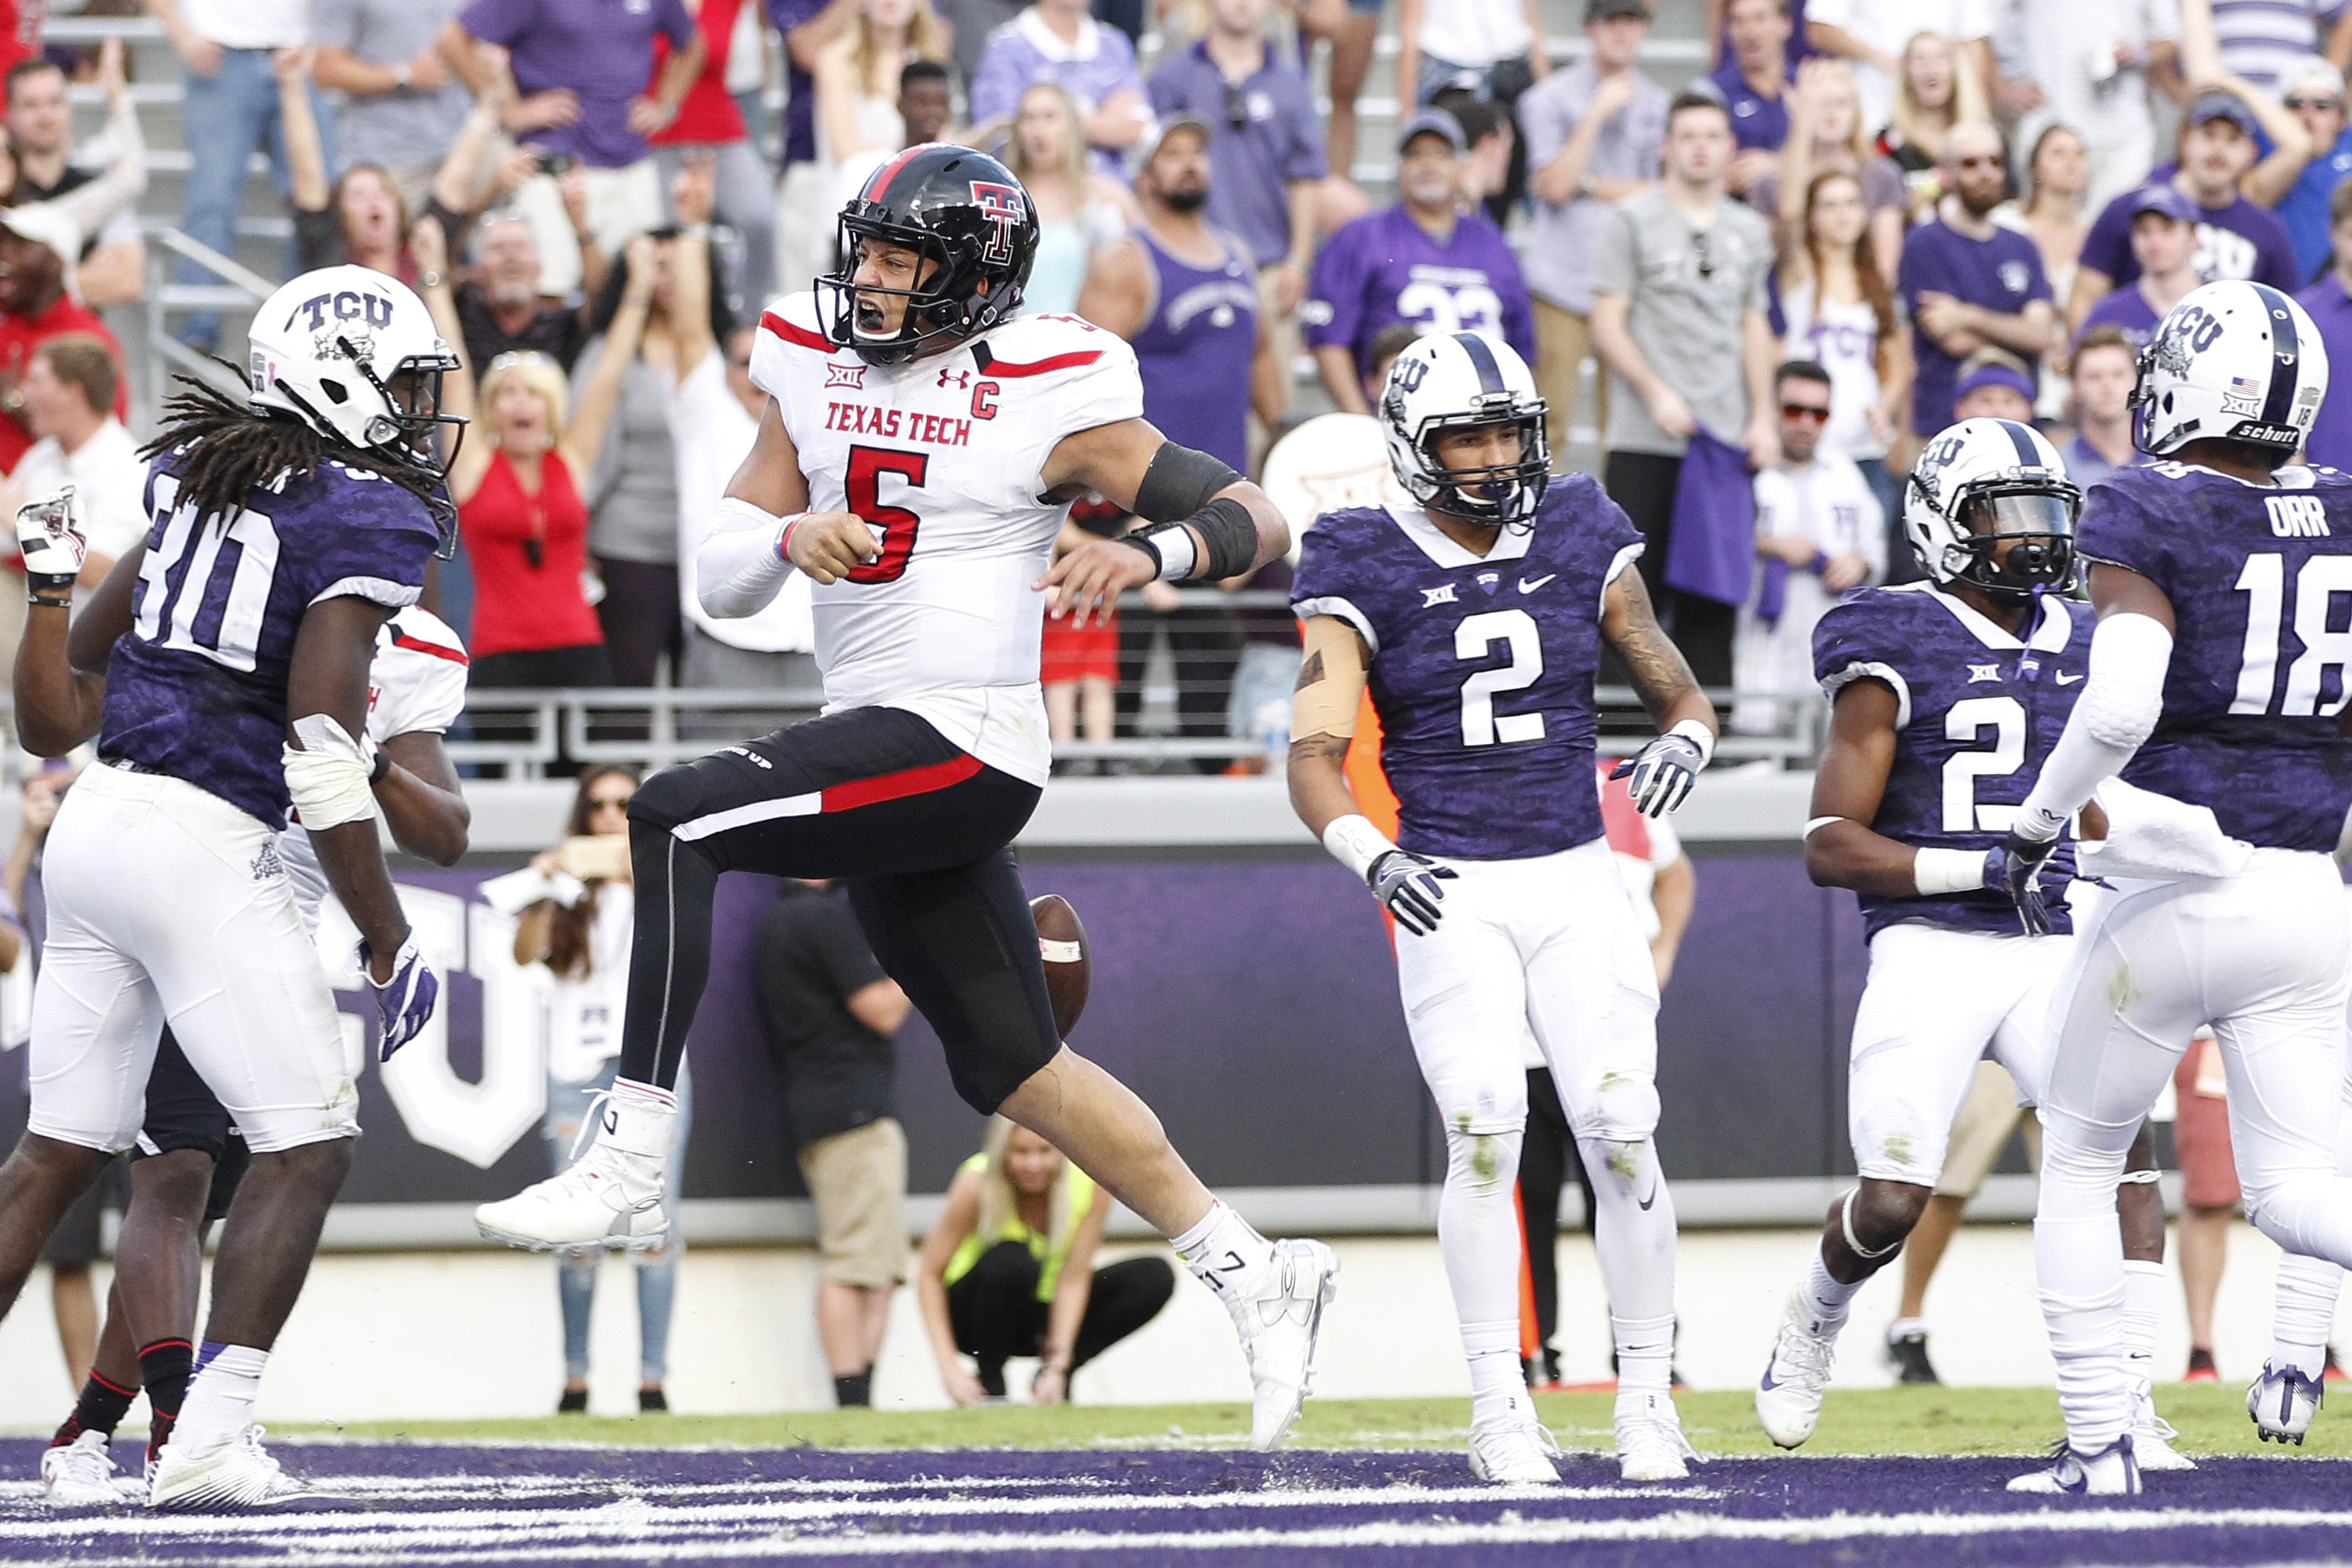 9640744-ncaa-football-texas-tech-at-texas-christian